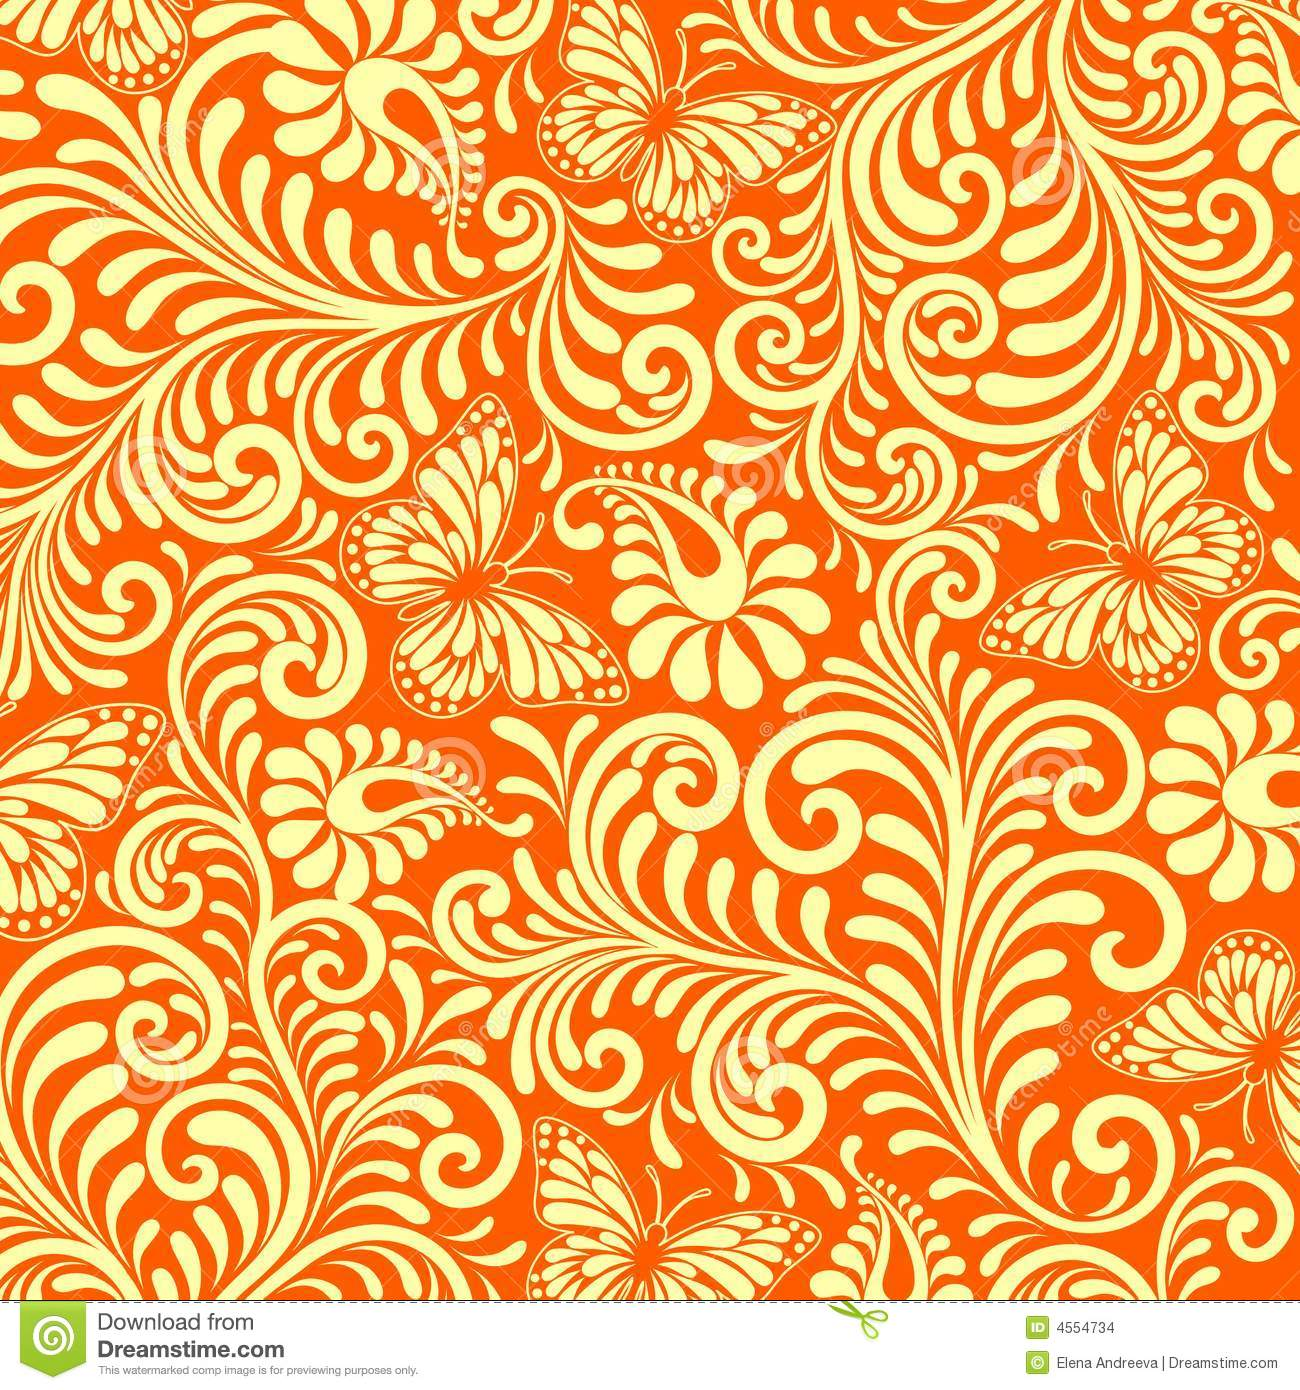 More similar stock images of ` Floral background. `